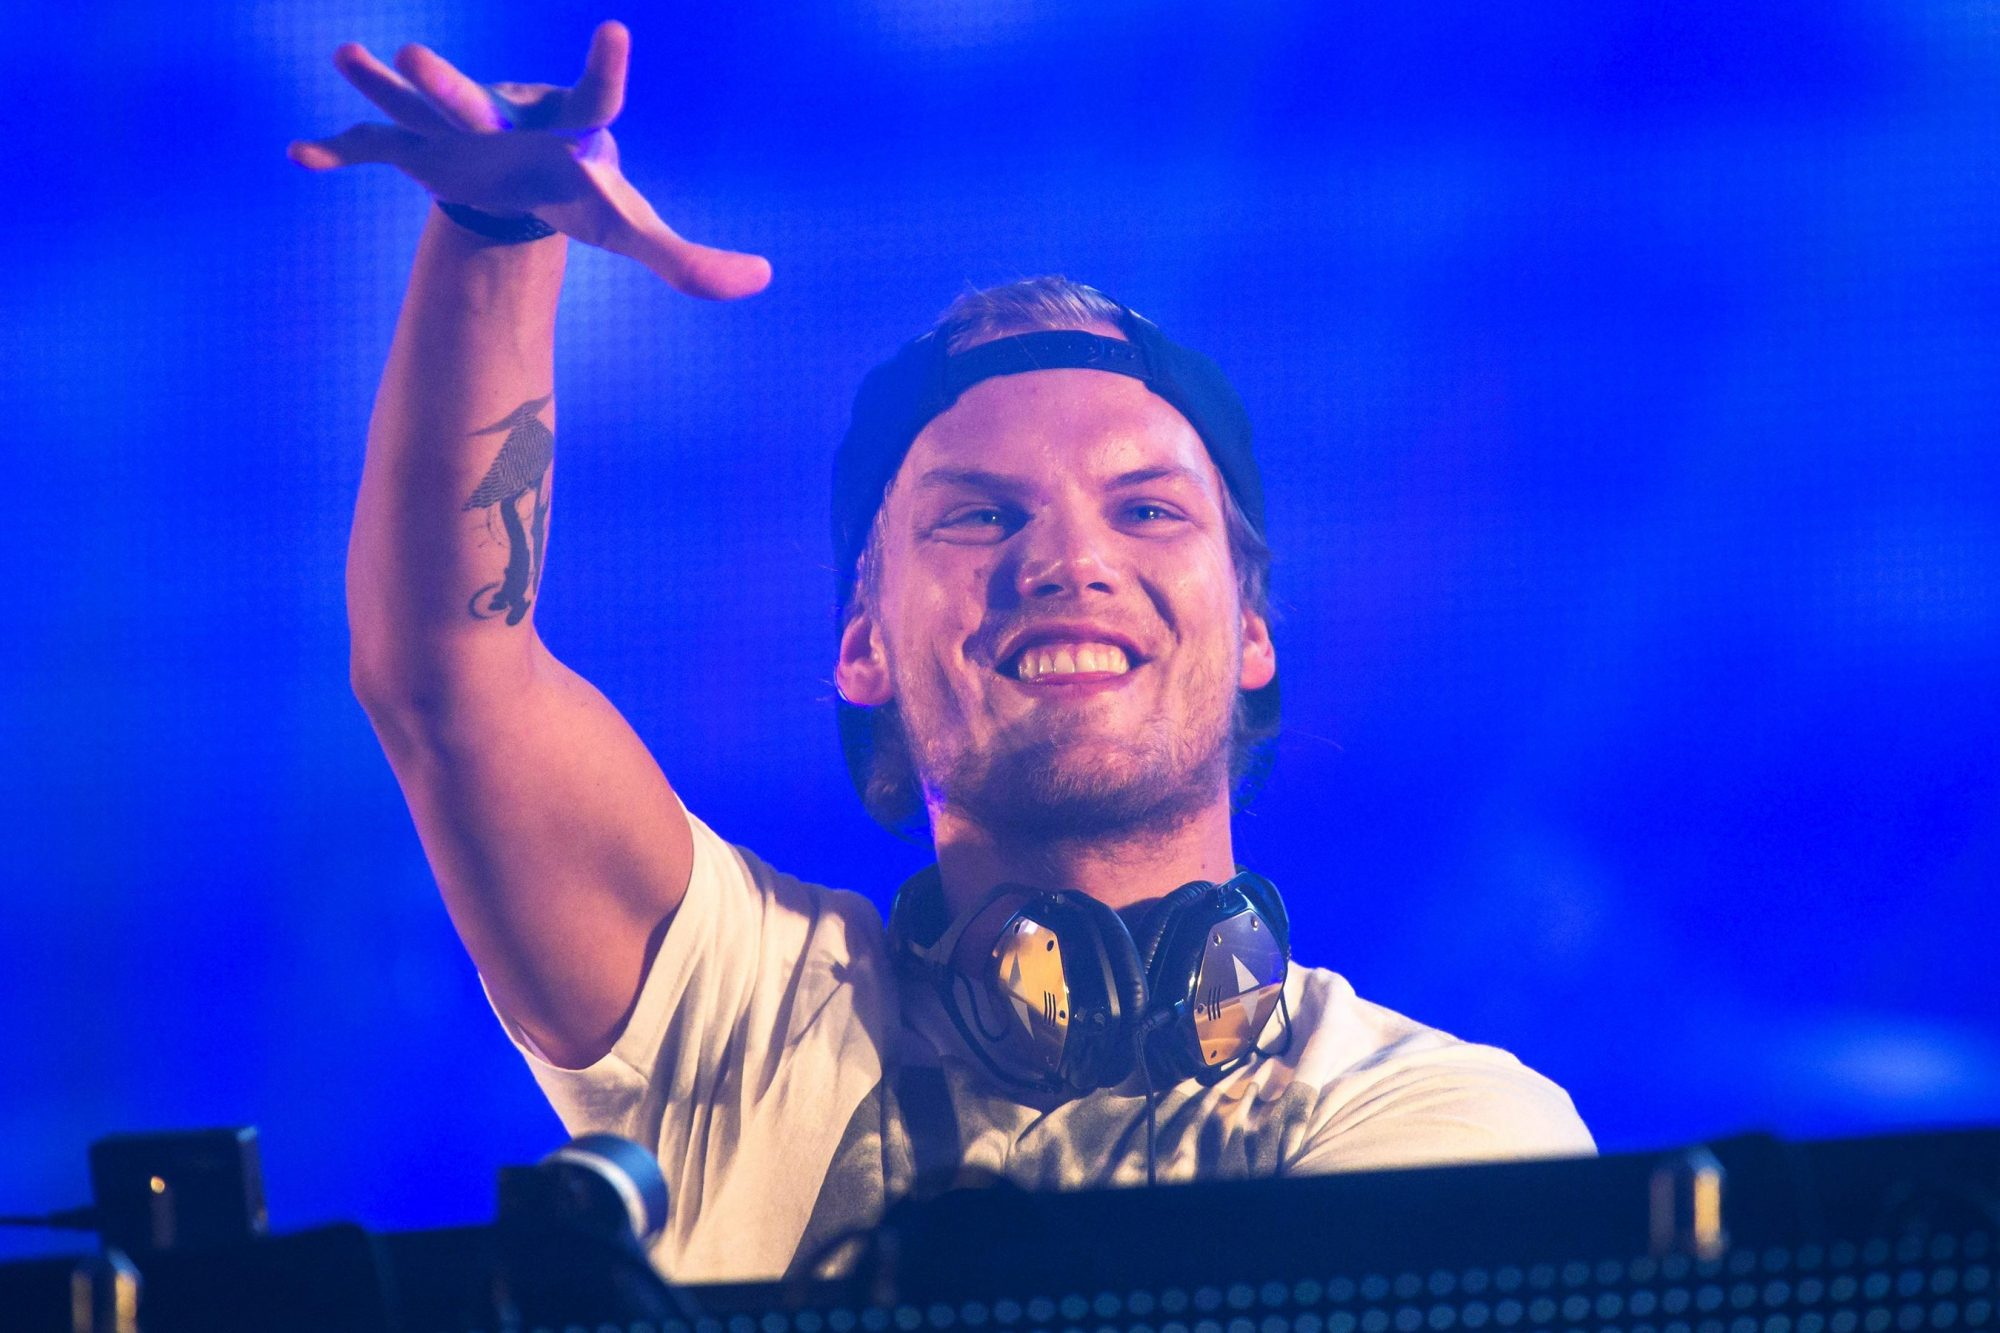 Avicii in concert, Summerburst festival, Nya Ullevi, Gothenburg, Sweden - 30 May 2015